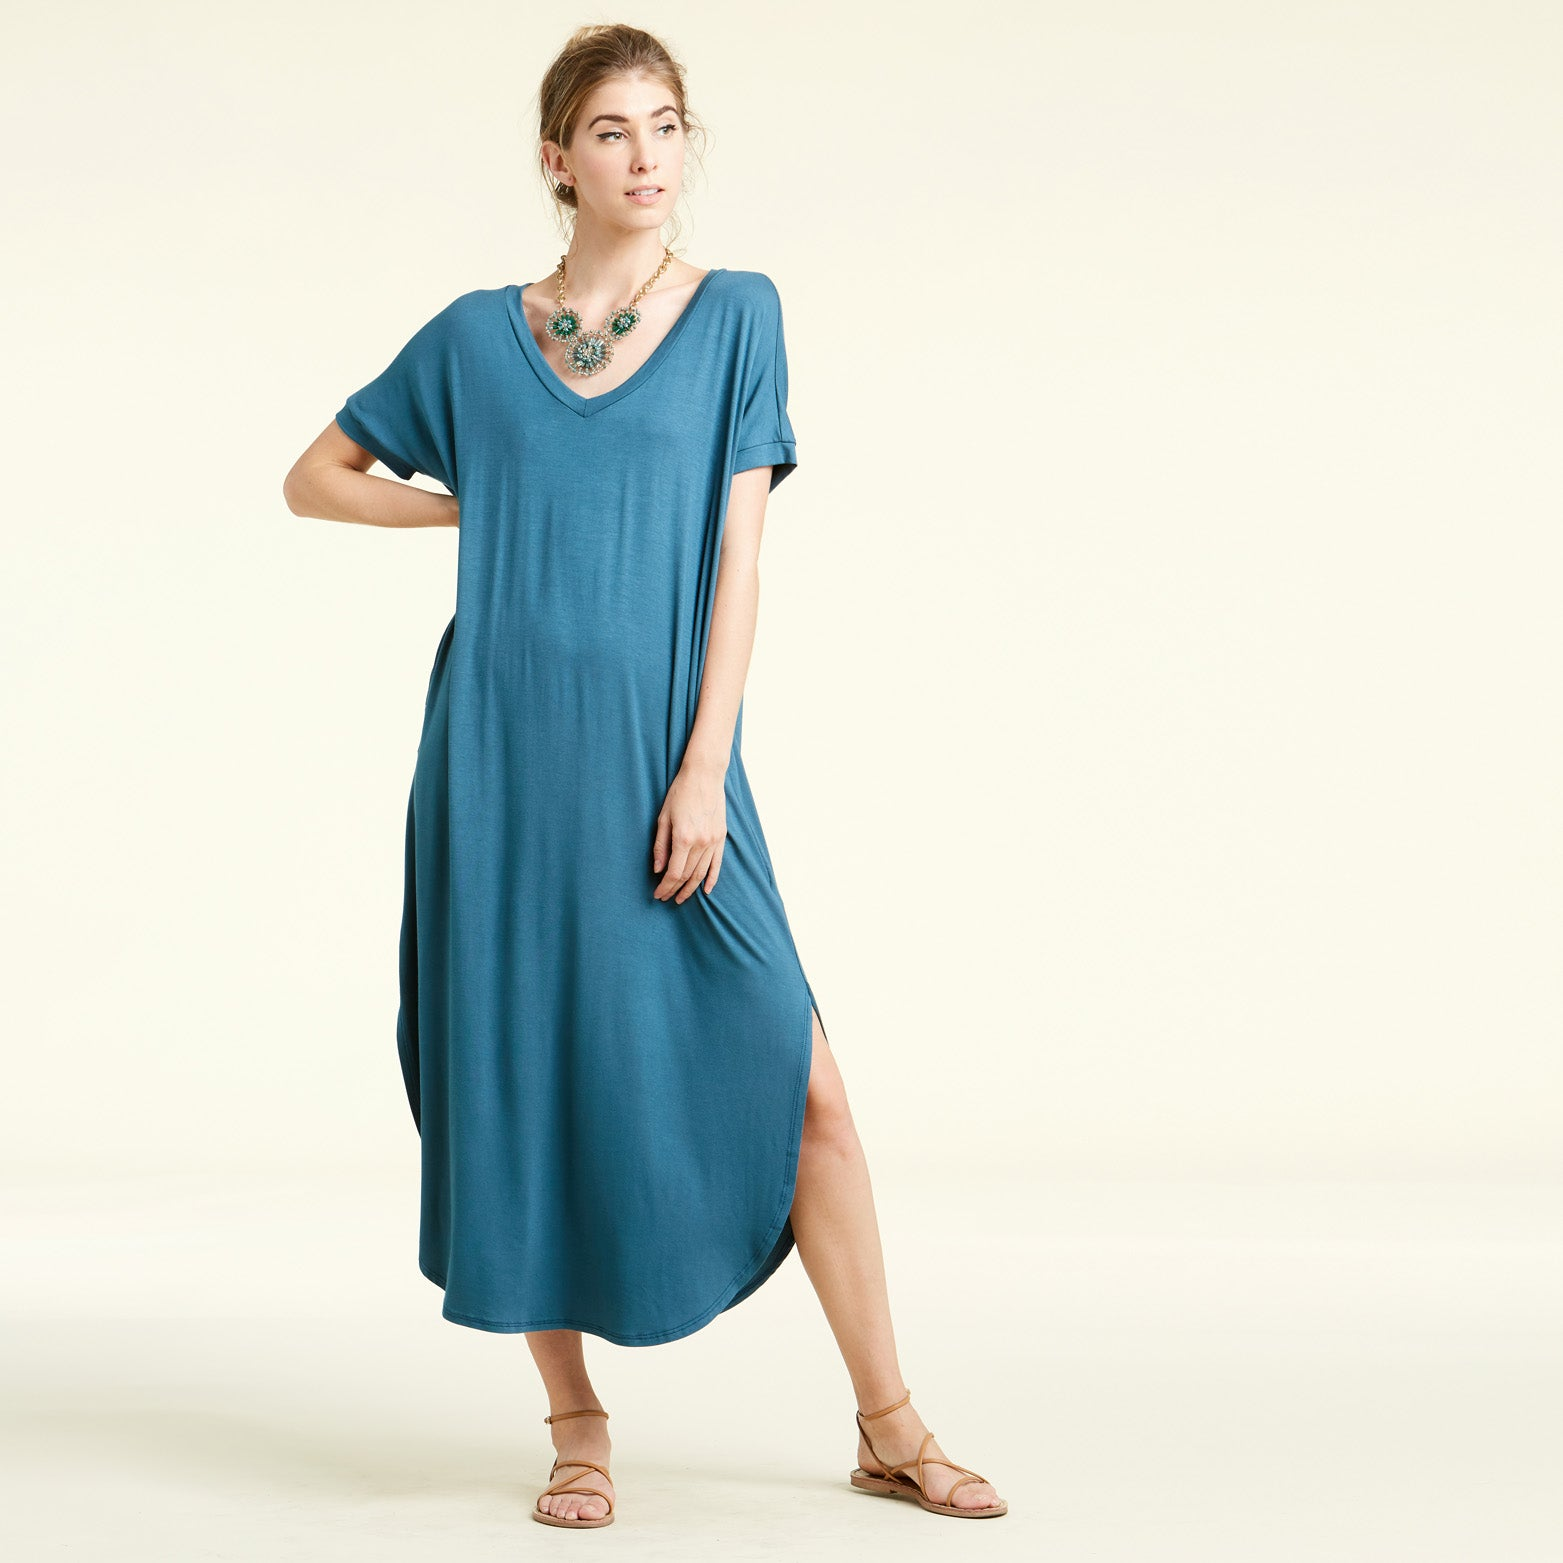 RL Teal Maxi Dress